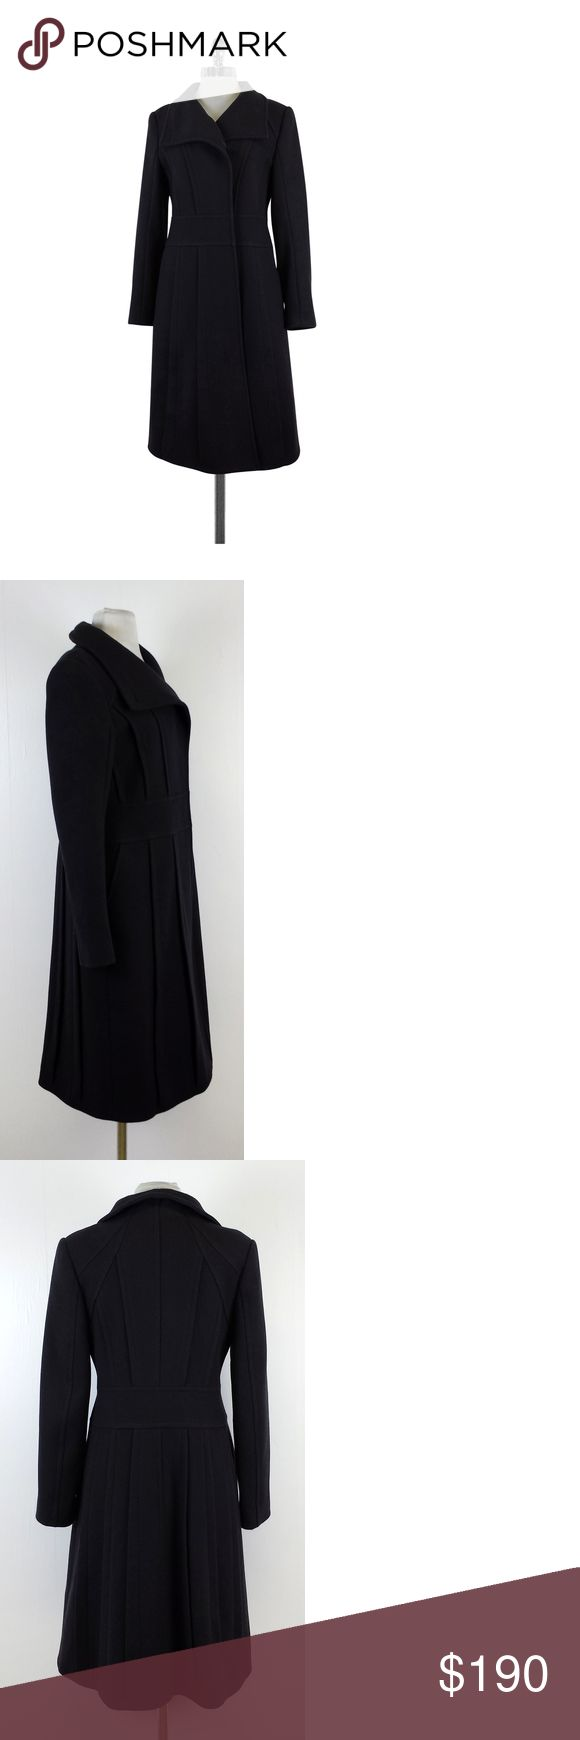 """Reiss- Charcoal Wool Coat Sz M This charcoal wool coat will keep you warm & stylish during the coldest of days. This timeless basic pairs well with everything in your closet. Size Medium Body 80% Wool 20% Polyamide Lining 100% Viscose Buttons on front Lightly padded shoulders Side pockets Waist 35"""" Shoulder to Hem 41.5"""" Founded in 1971, Reiss has won a loyal fanbase thanks to its exceptional quality and directional, design-led collections. Offering everything from fine tailoring to…"""